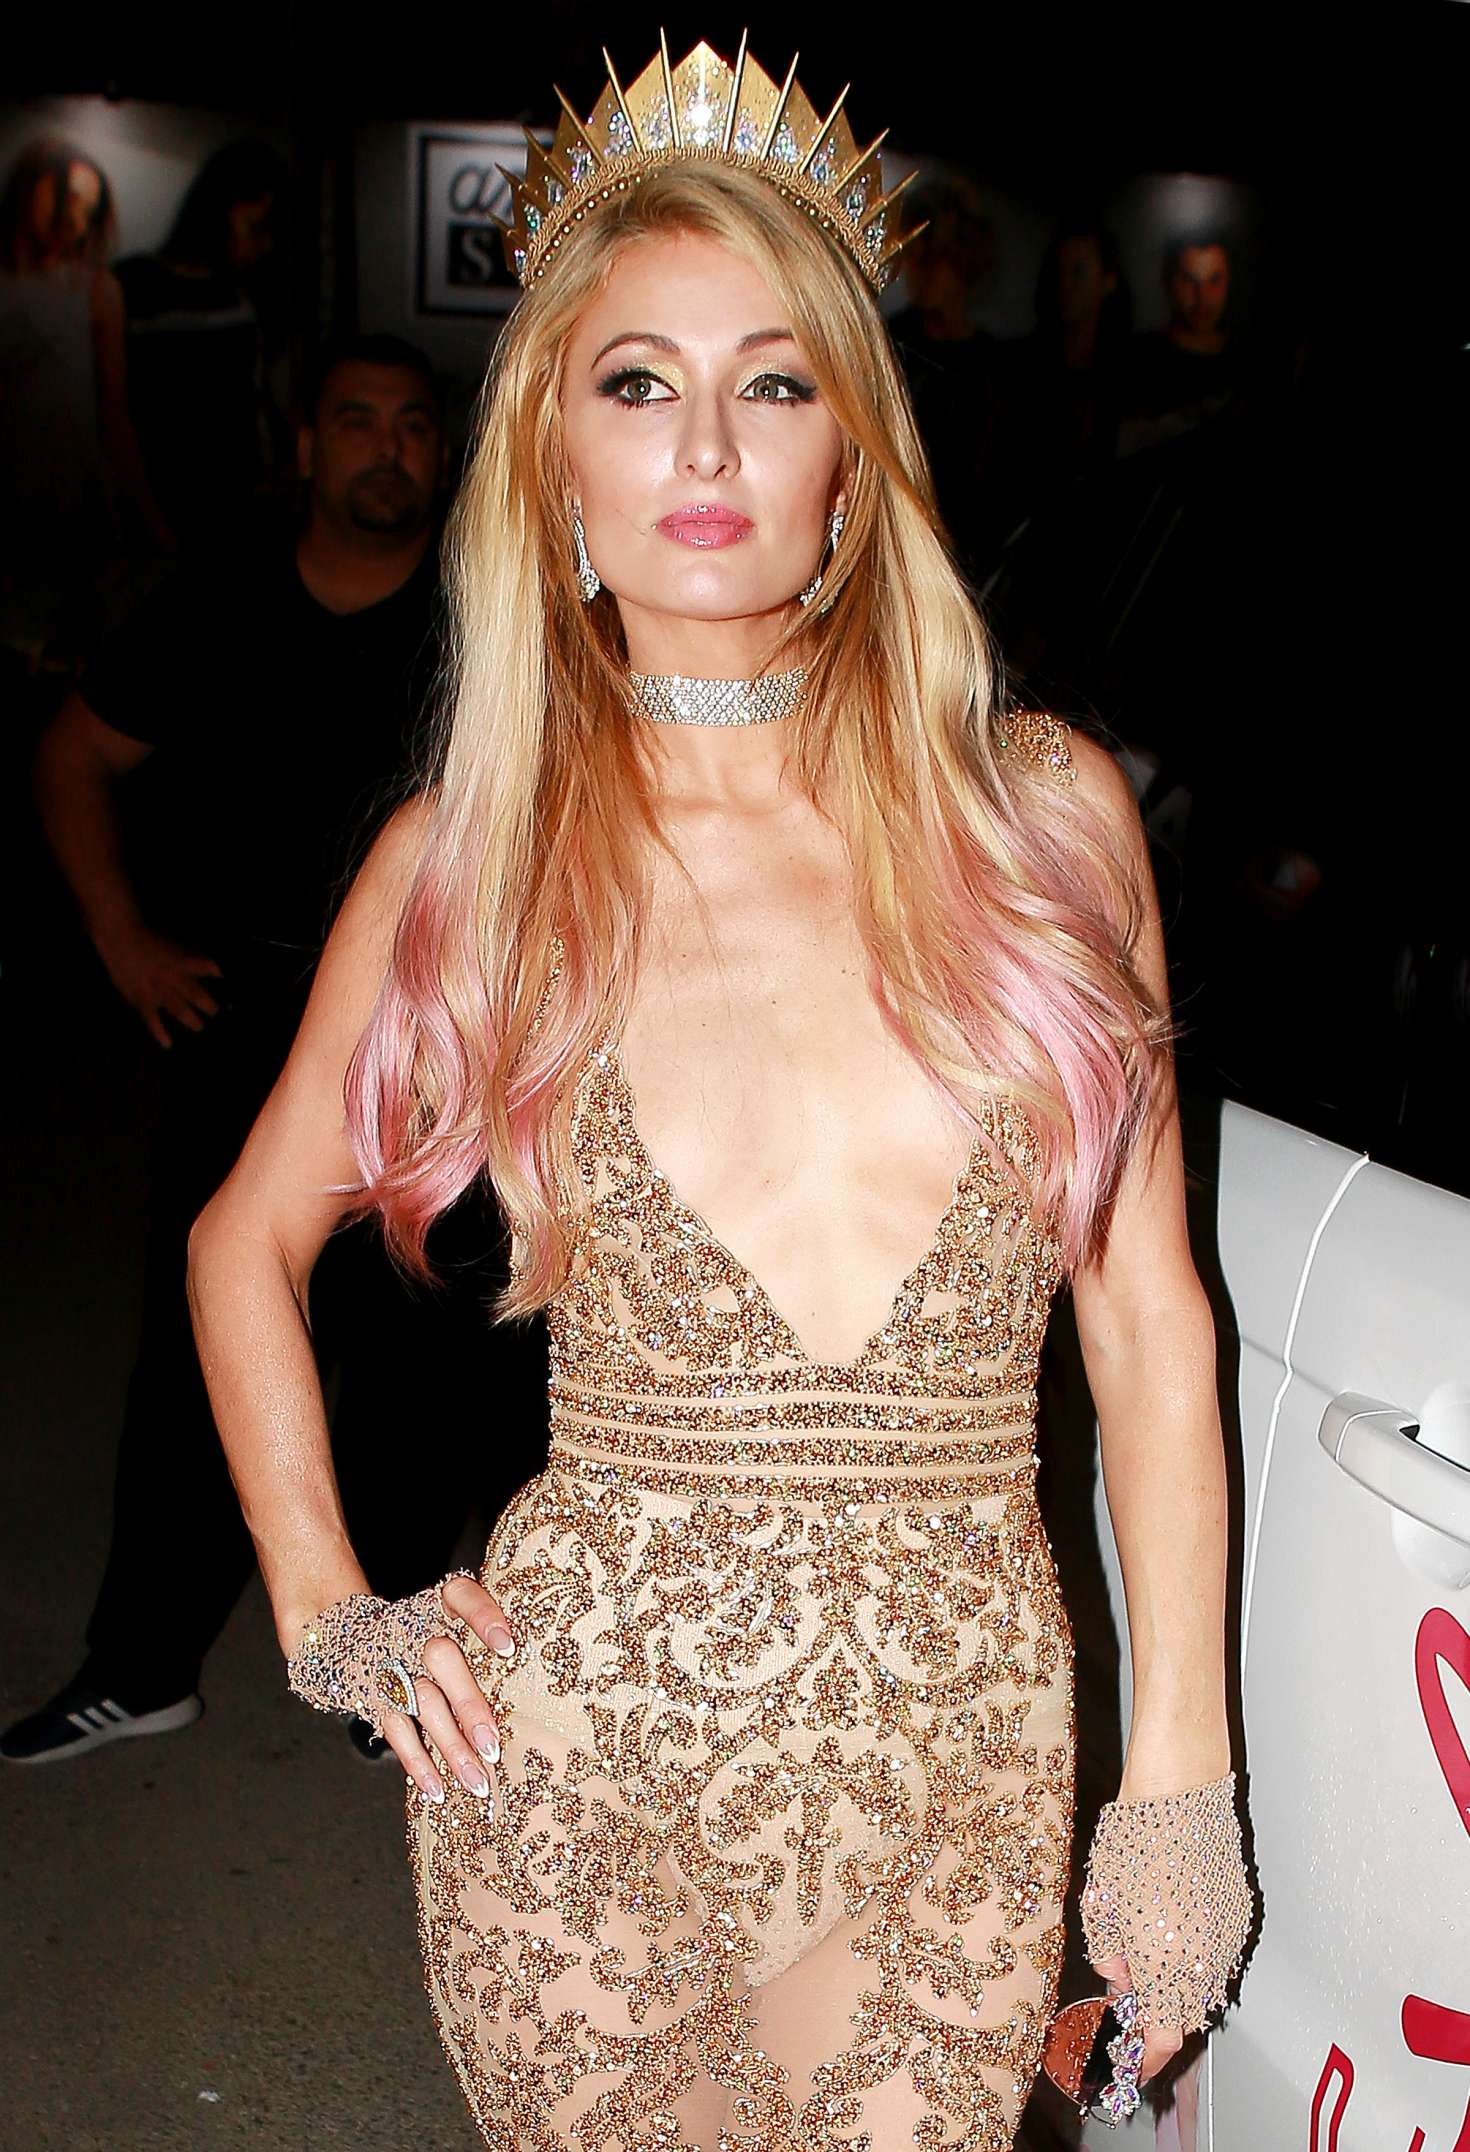 Paris hilton at foam and dimonds opening party in ibiza - Paris hilton ibiza ...